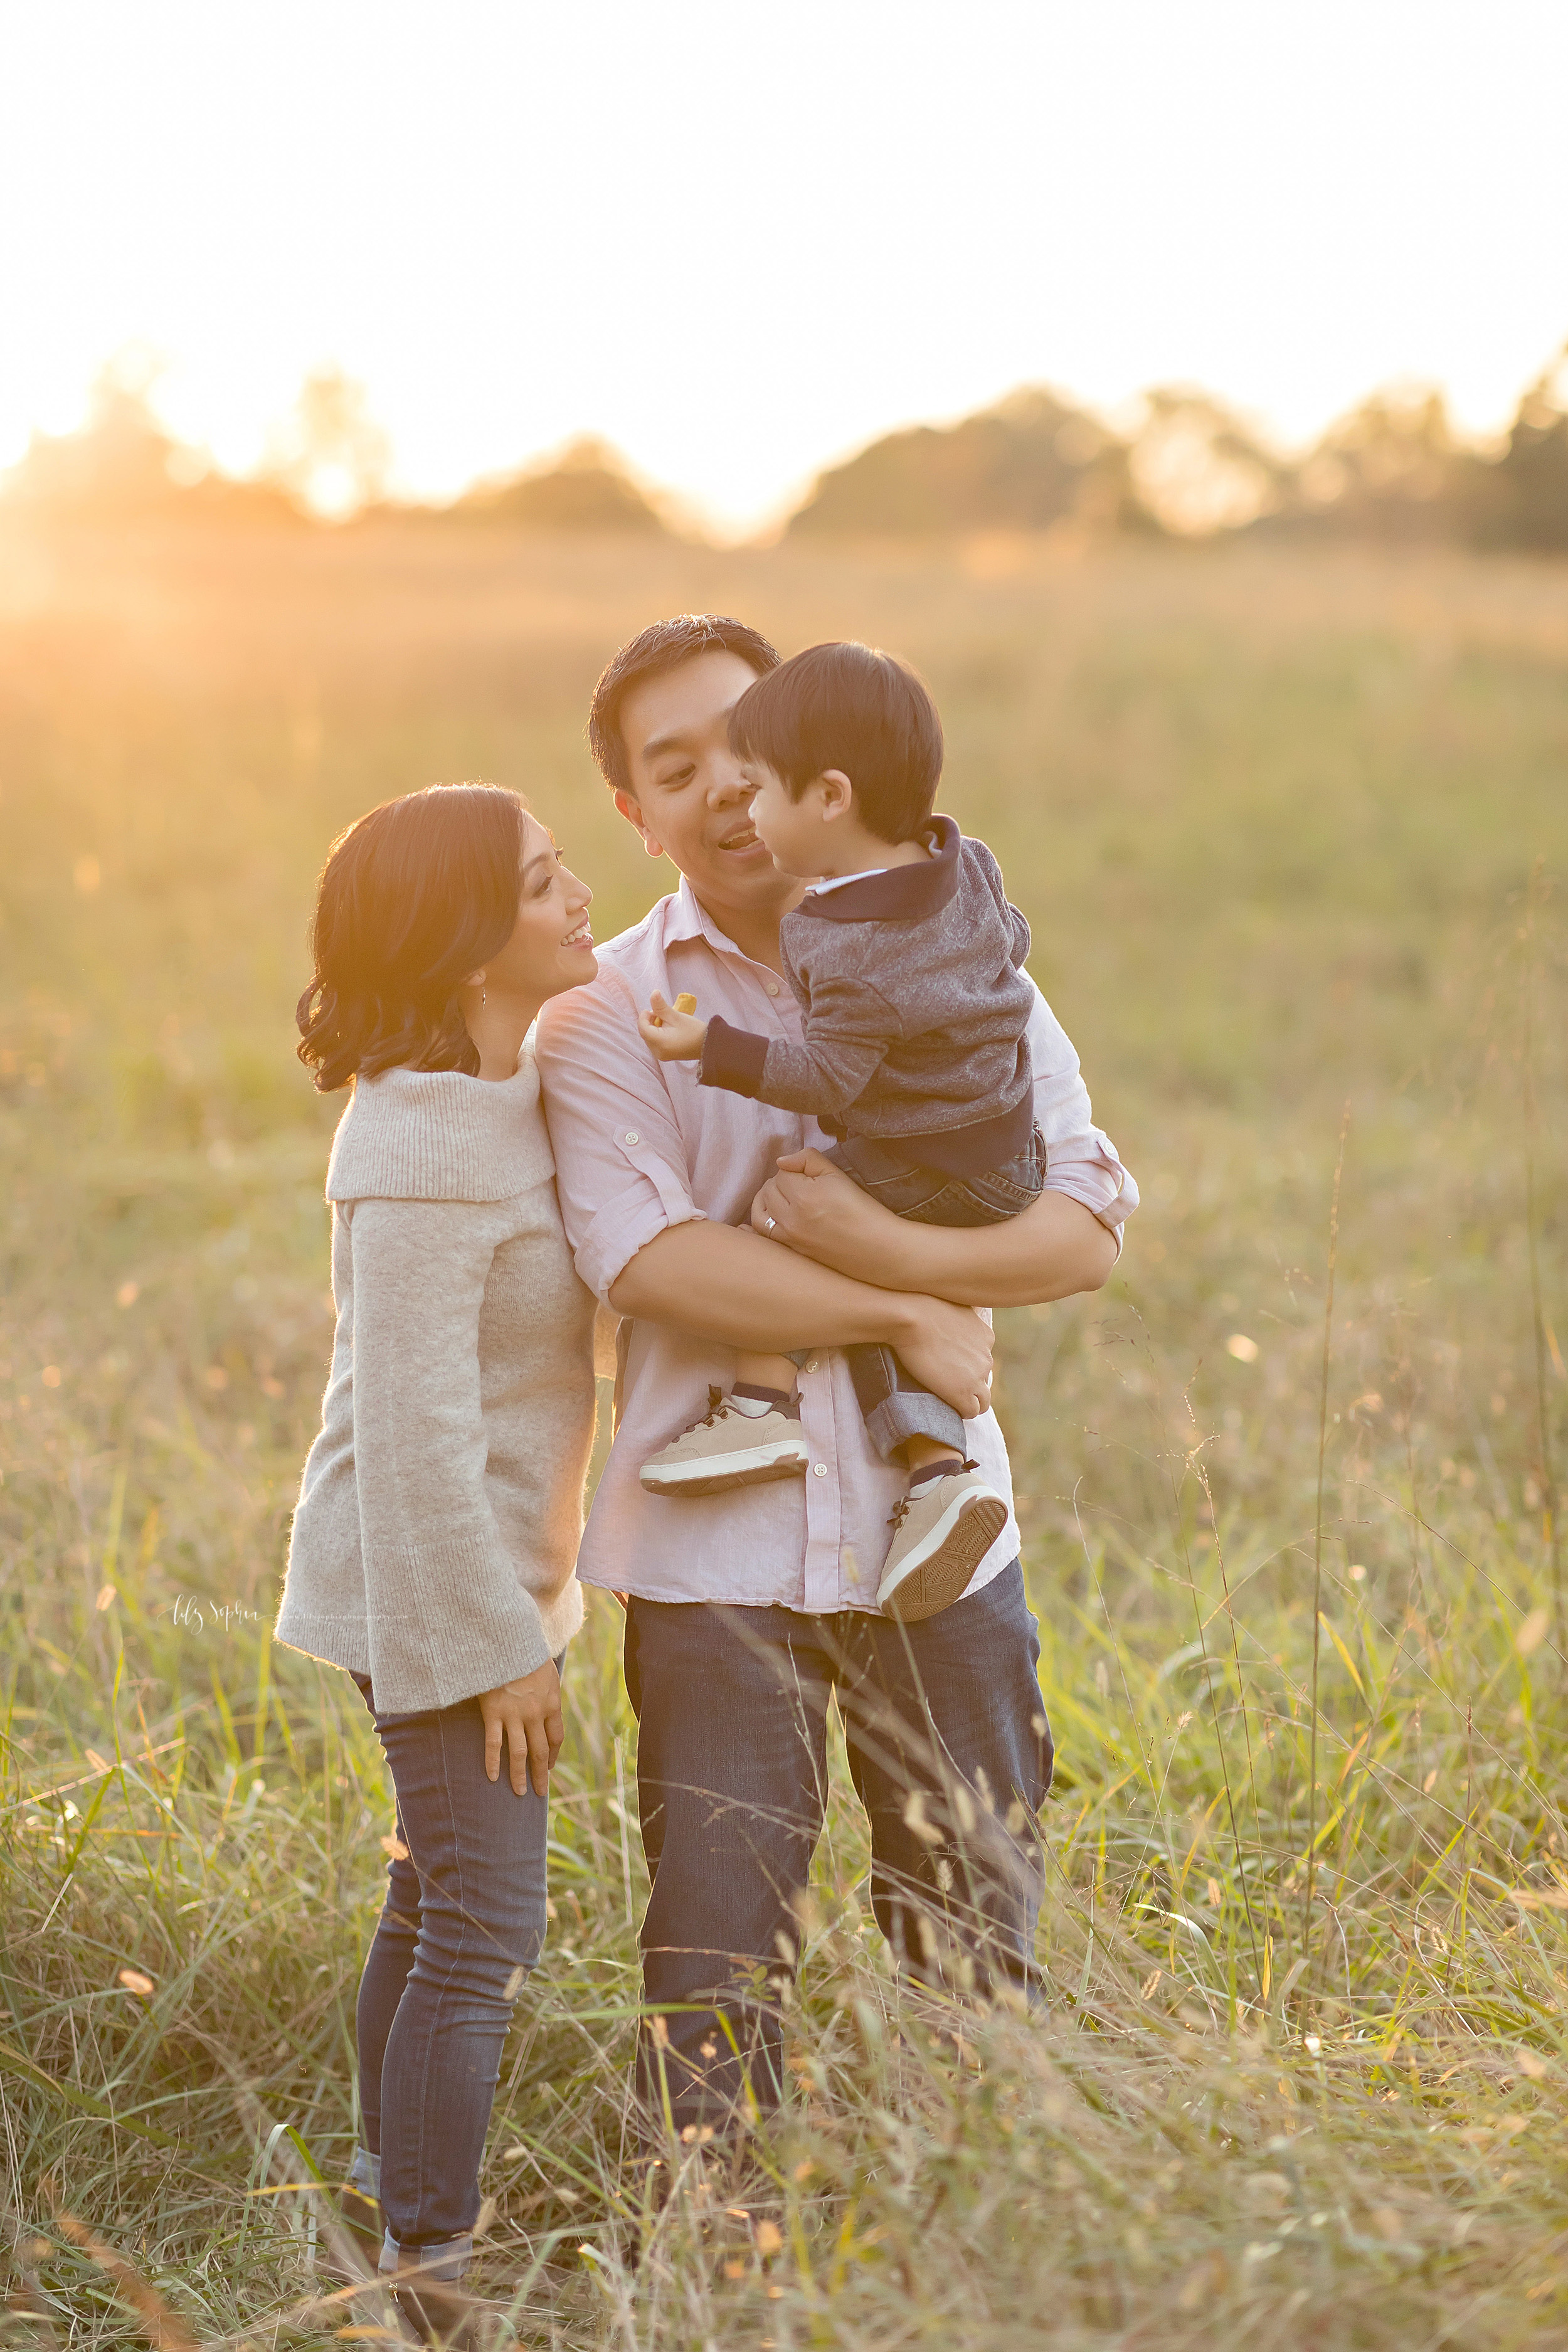 Photograph of a happy Asian family of three in a field at sunset in Atlanta.  The father is holding his two year old son in his arms and mom is looking at the two year old as she stands next to dad's right side.